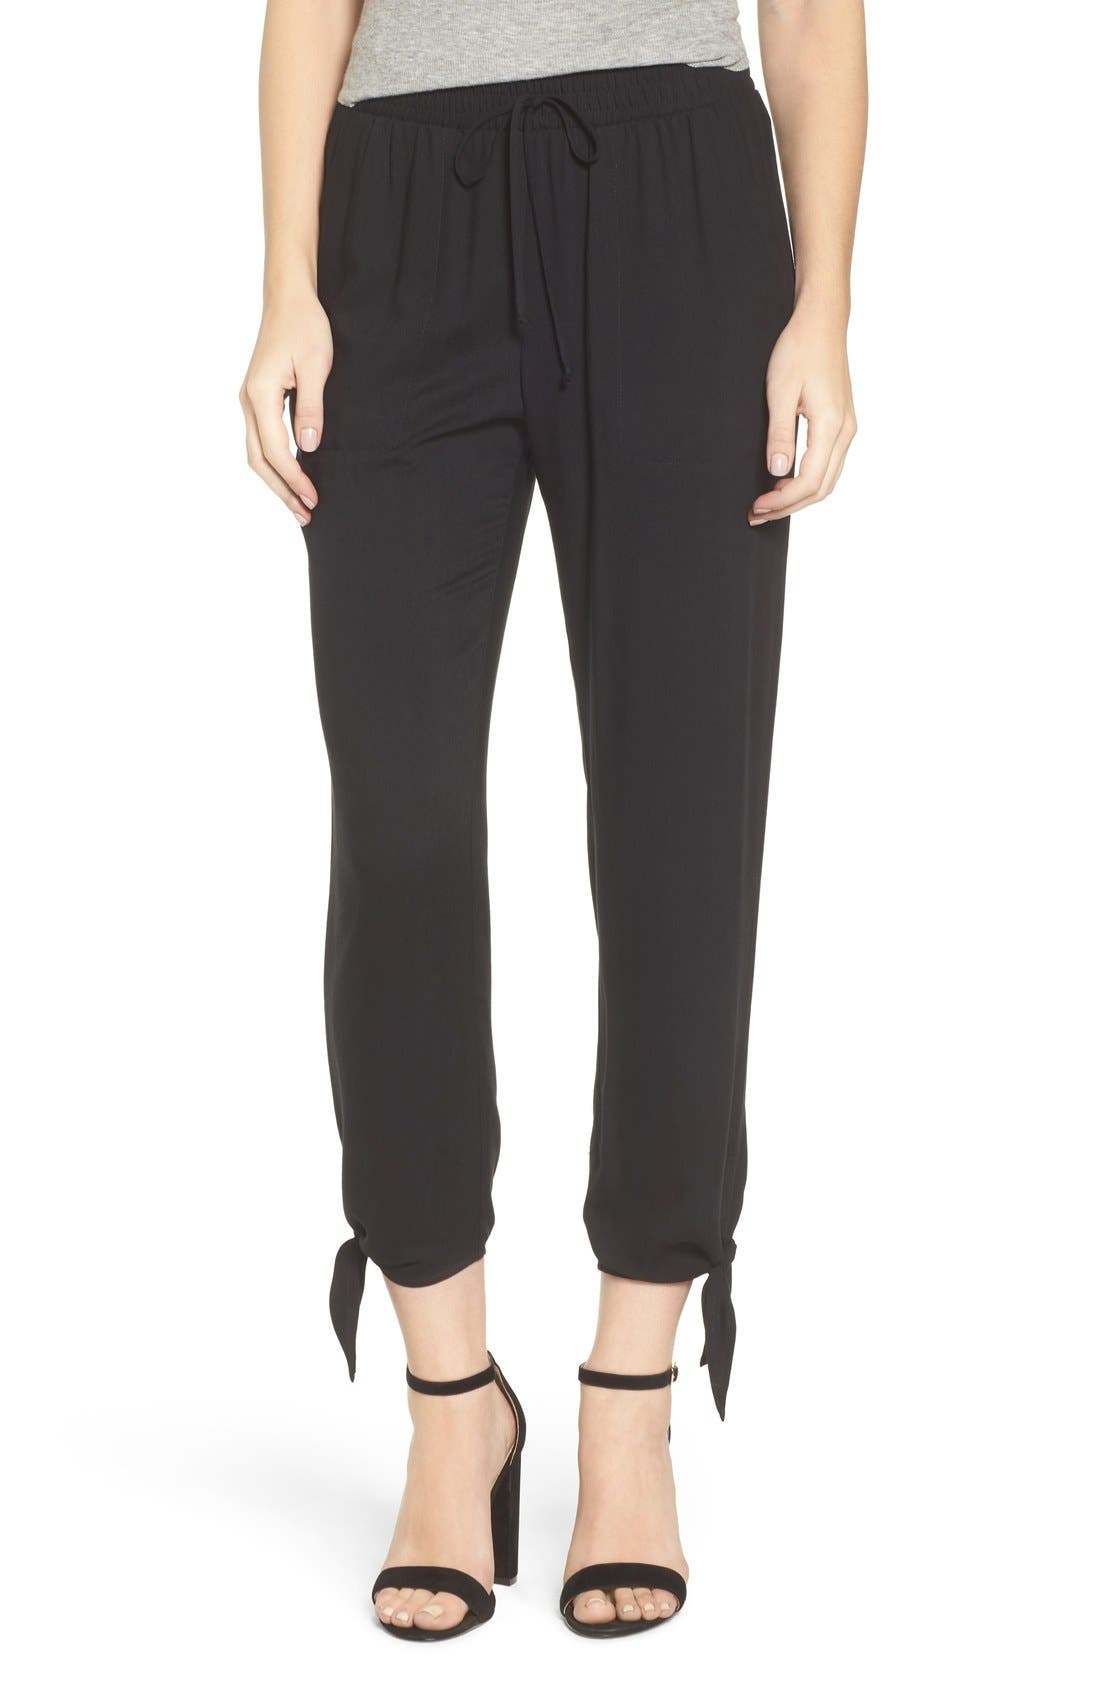 Alternate Image 1 Selected - Socialite Ankle Tie Pants